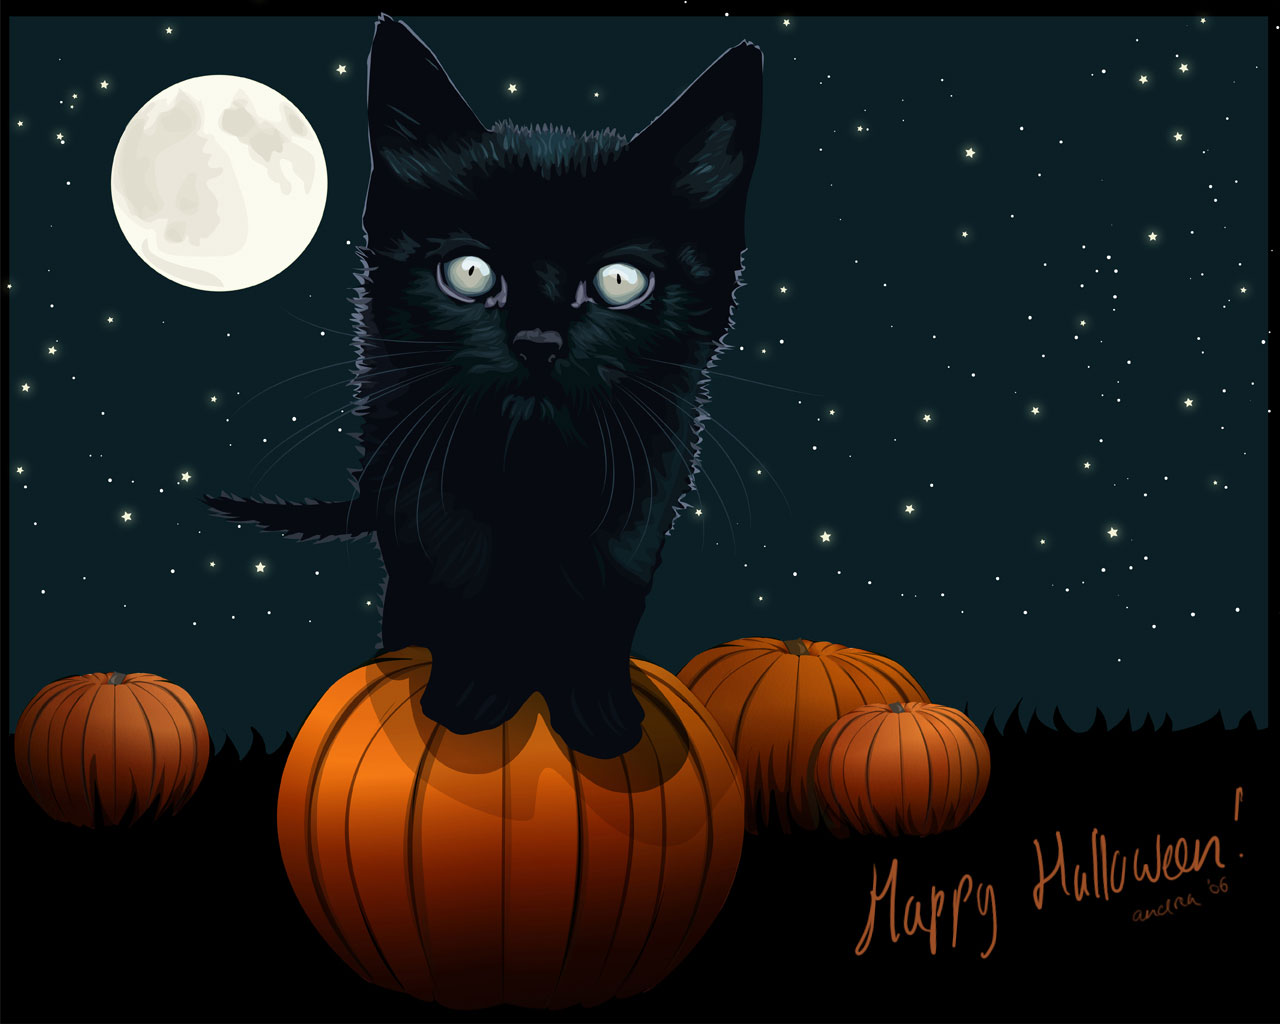 Free Download Cute Yet Scary Halloween Wallpaper 2014 1280x1024